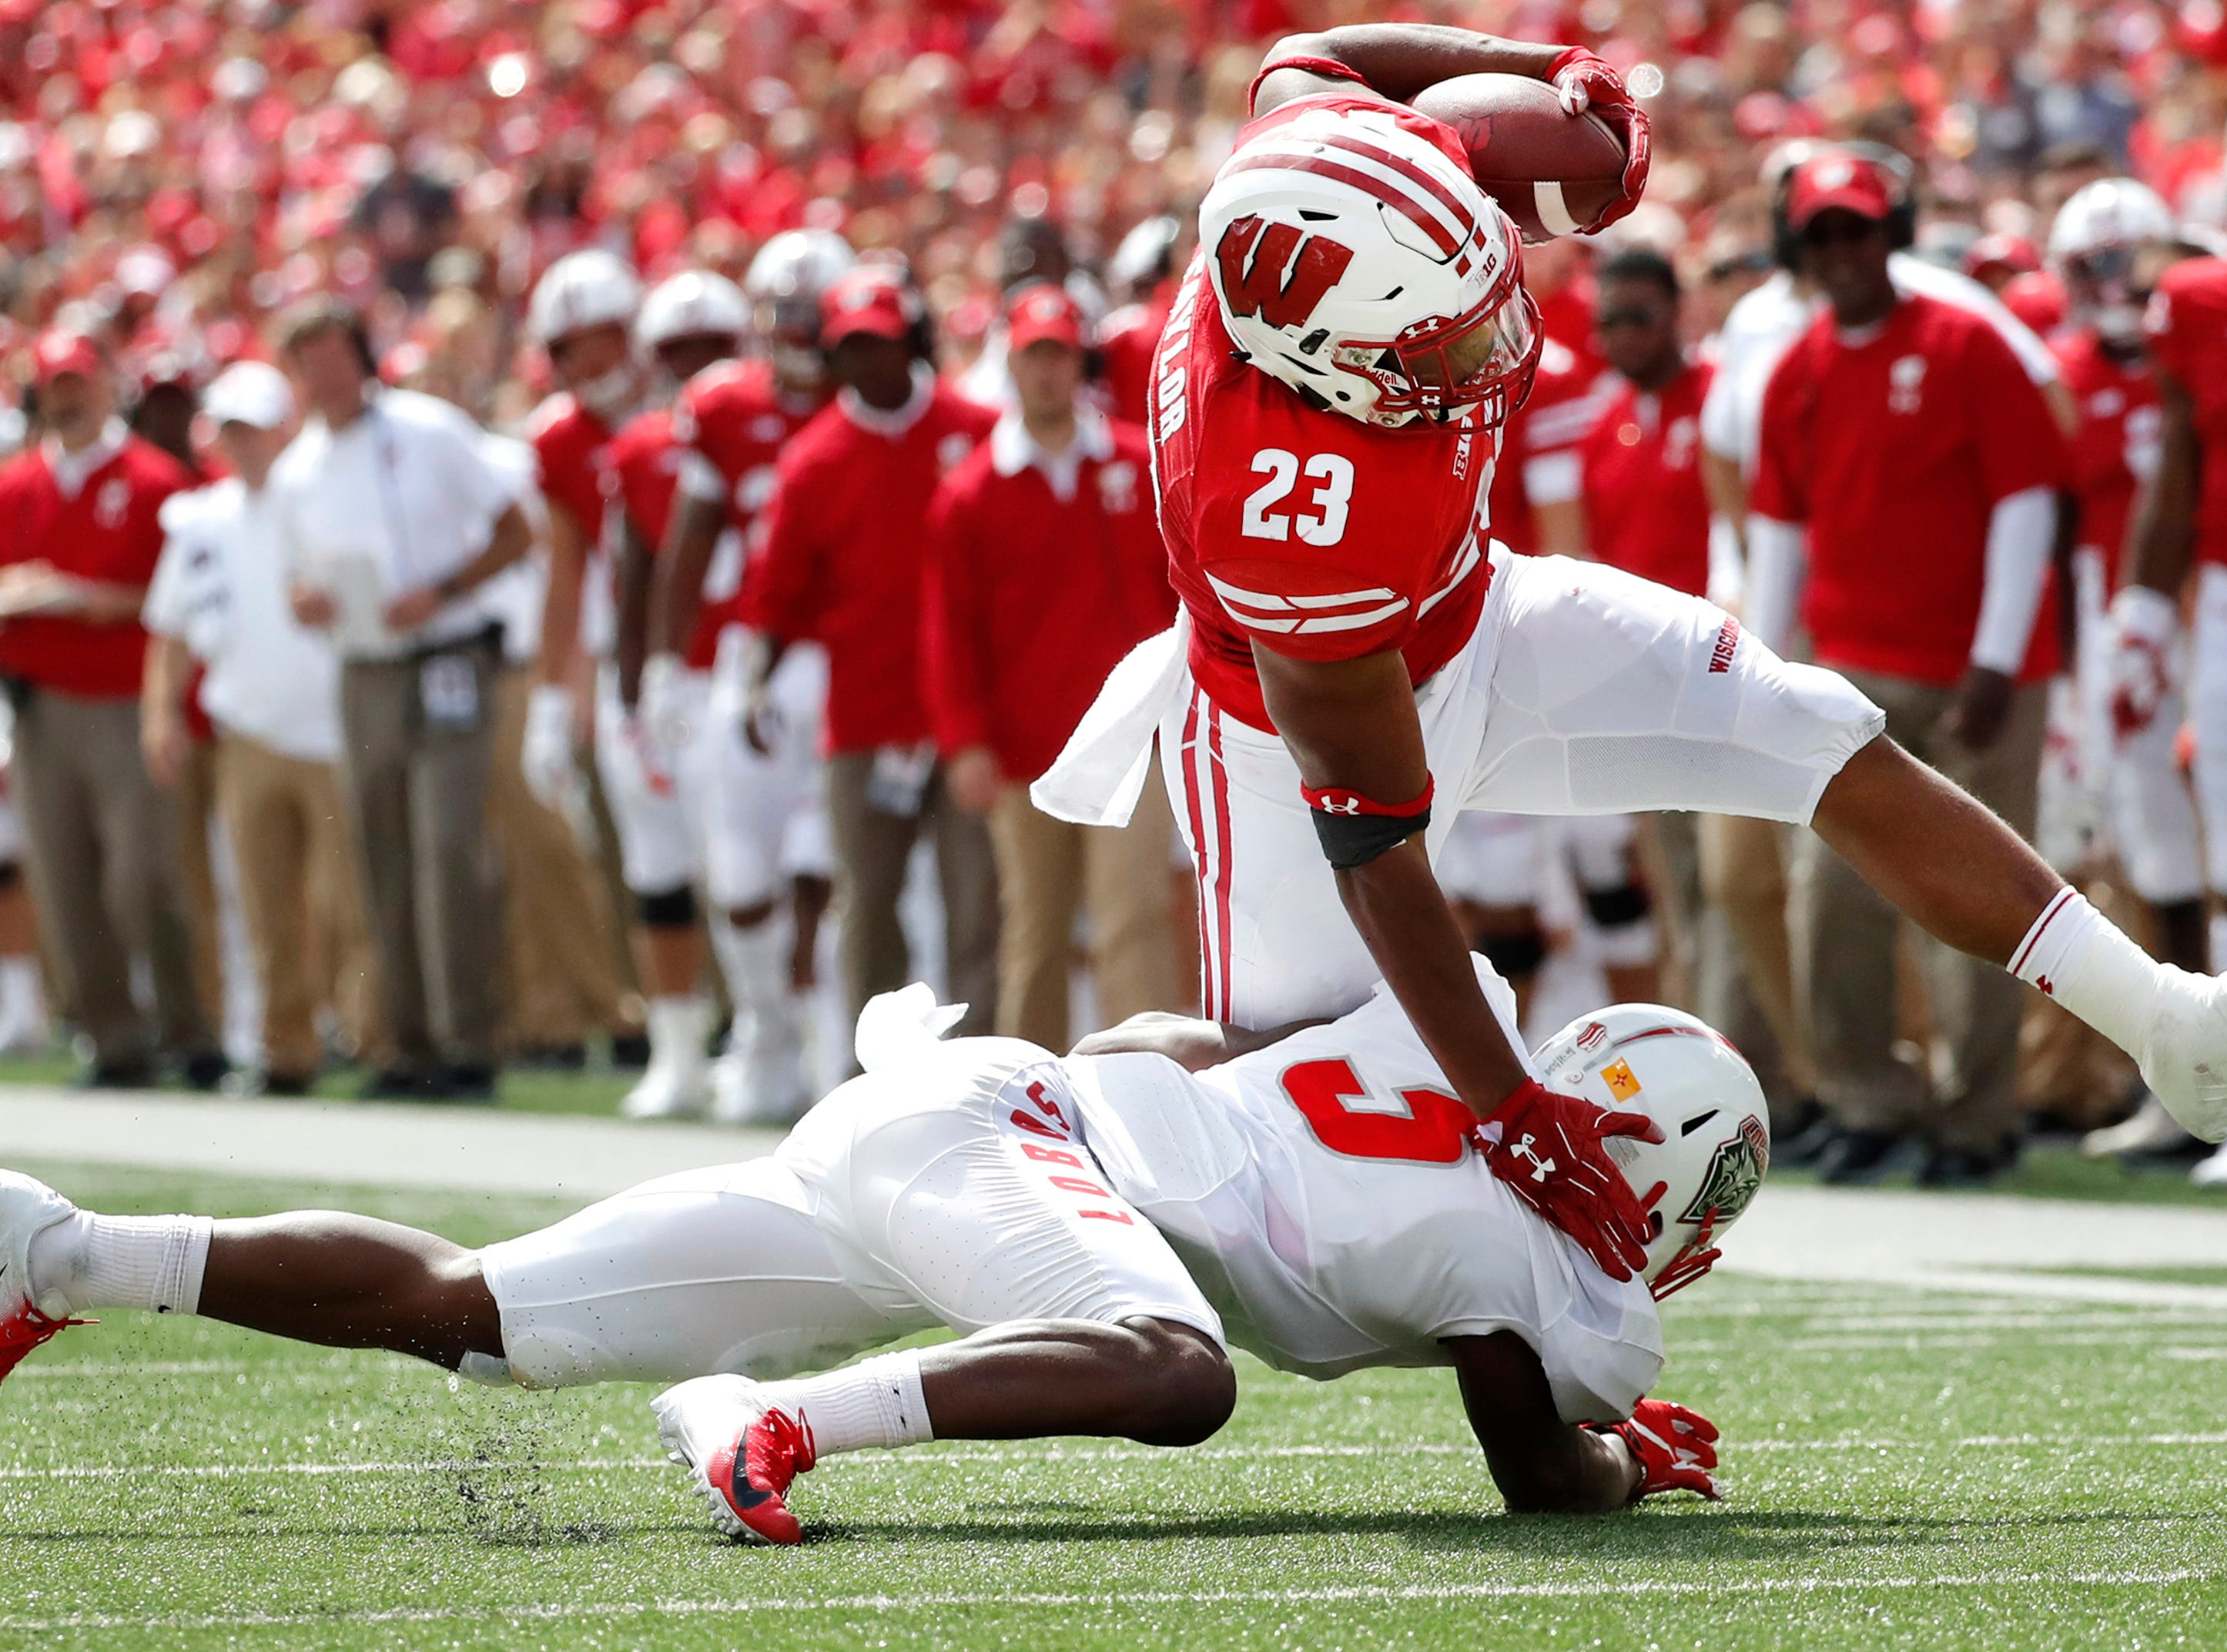 Wisconsin running back Jonathan Taylor (23) stretches for more yards while being brought down by New Mexico safety Michael Sewell Jr. (5) Saturday, Sept. 8, 2018, at Camp Randall Stadium in Madison, Wis.